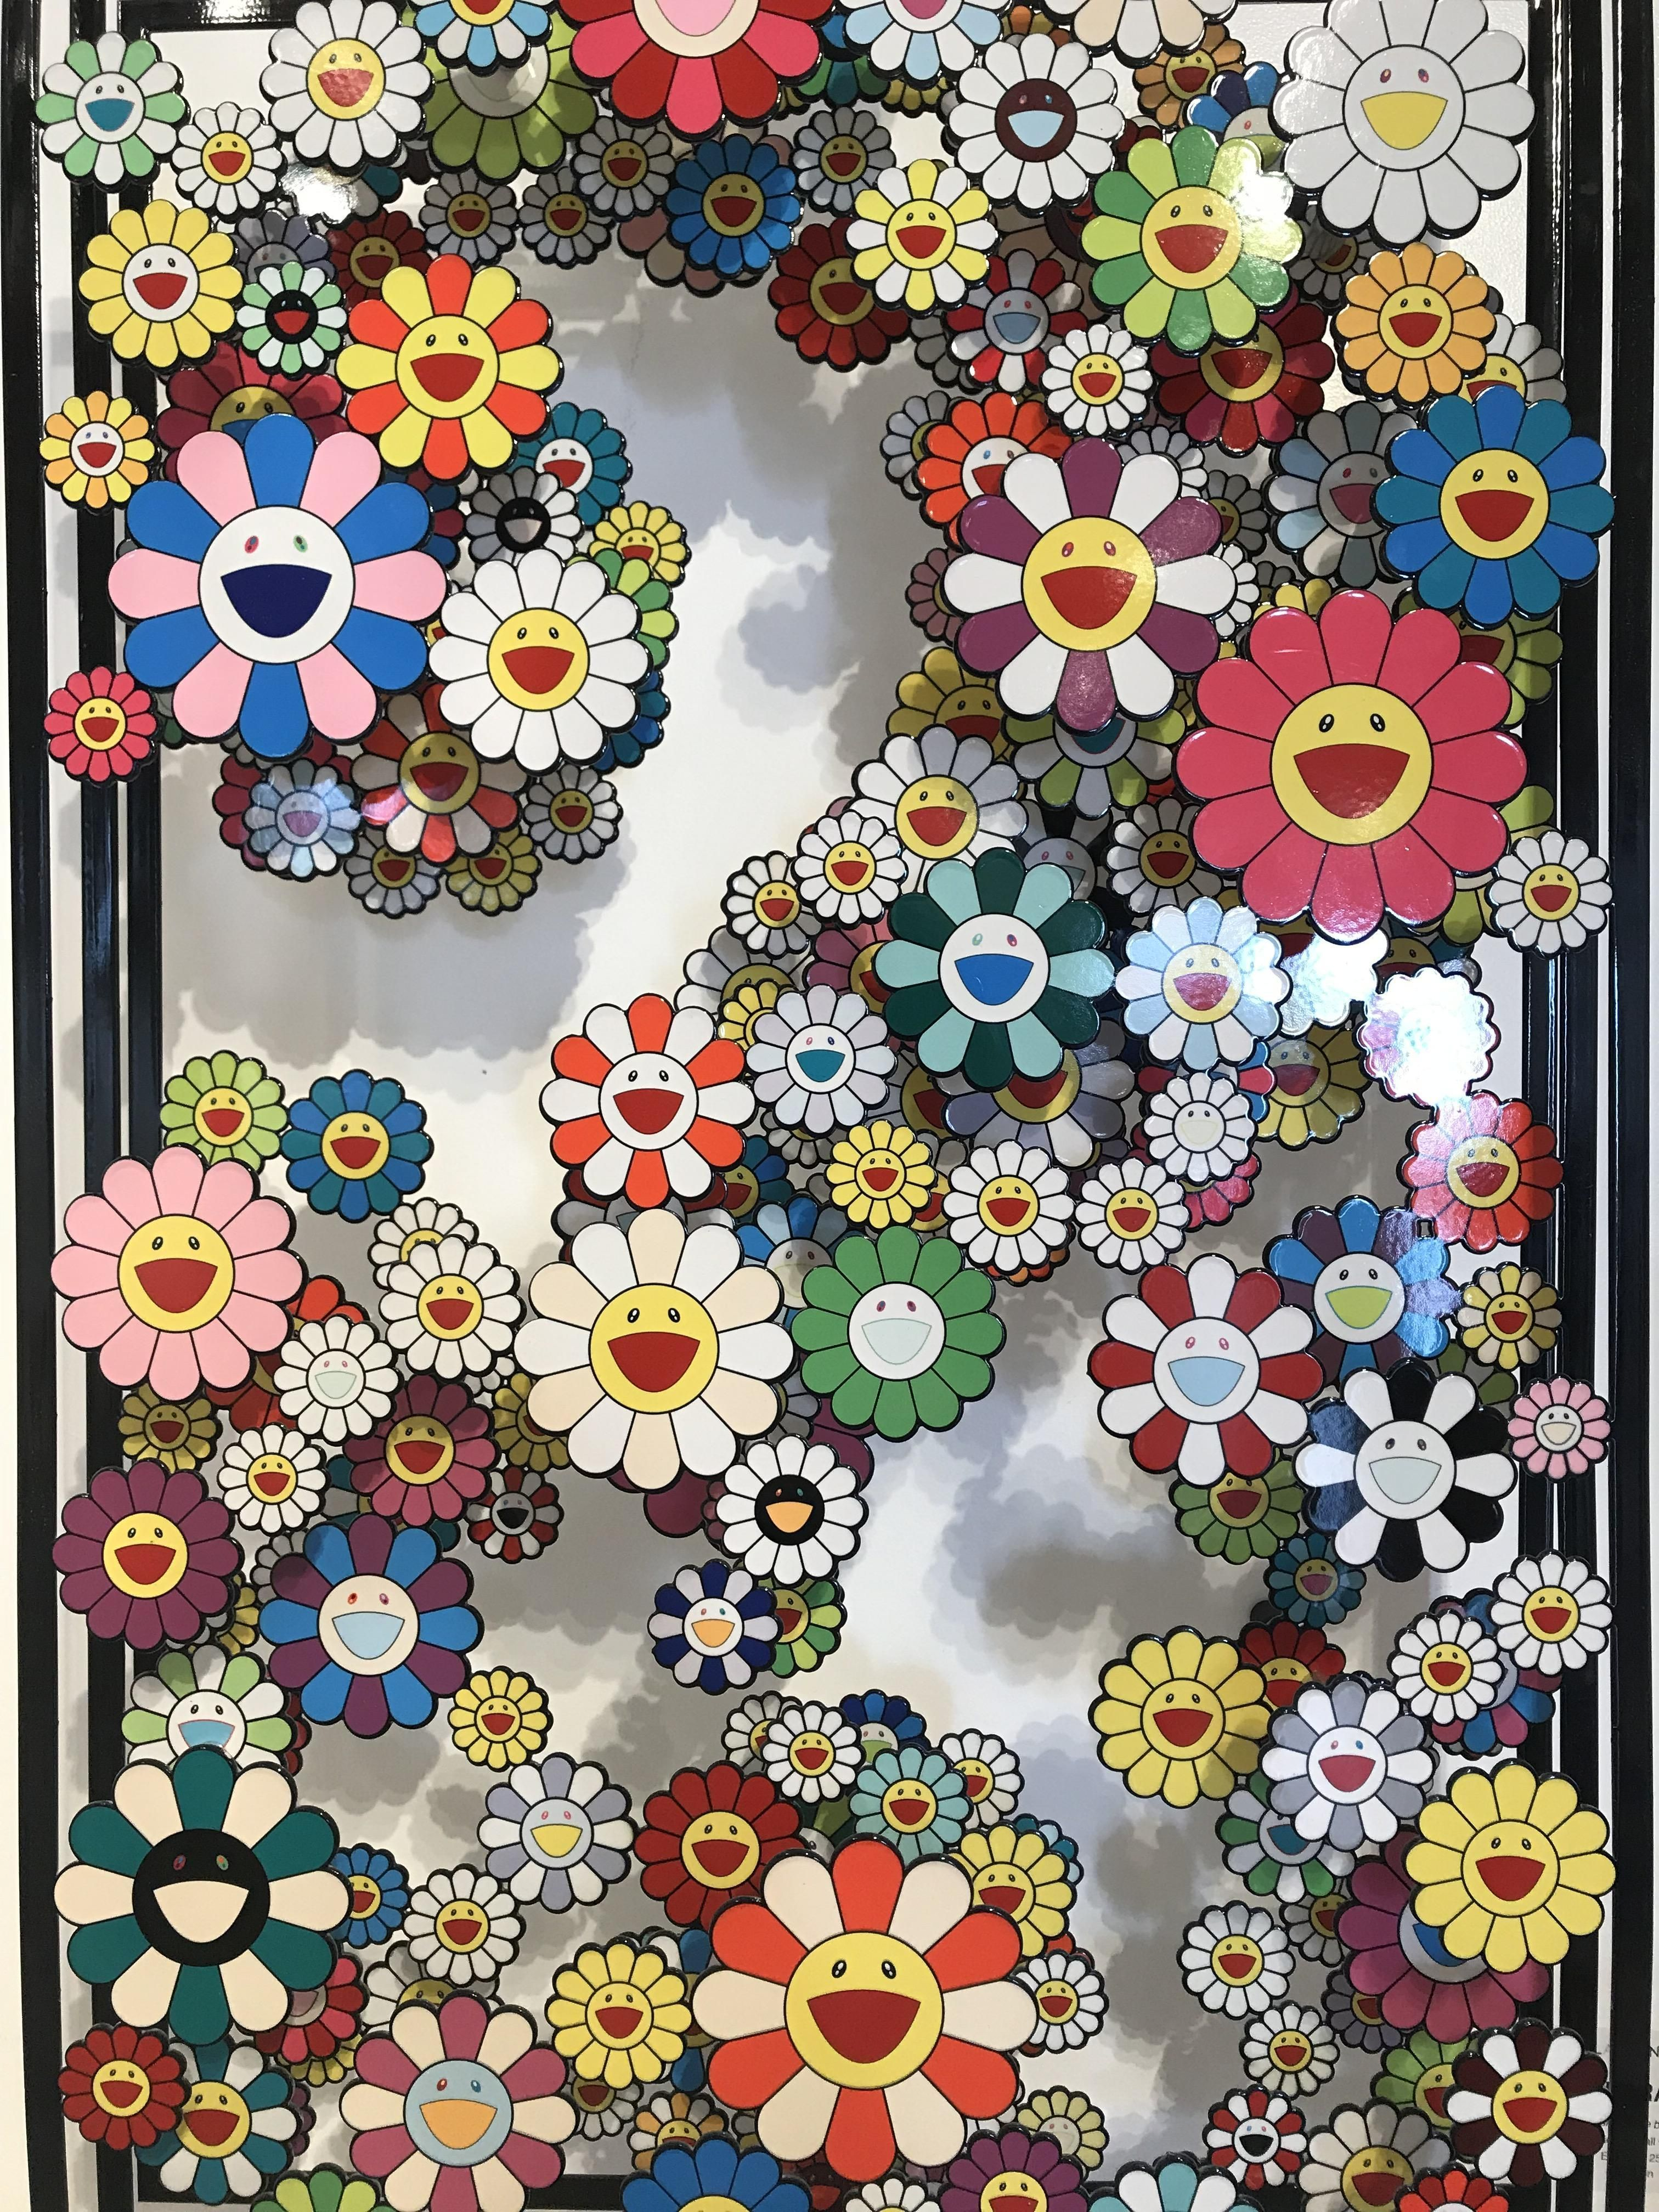 3024x4032 This Takashi Murakami I took a pic of at a gallery in Miami ...